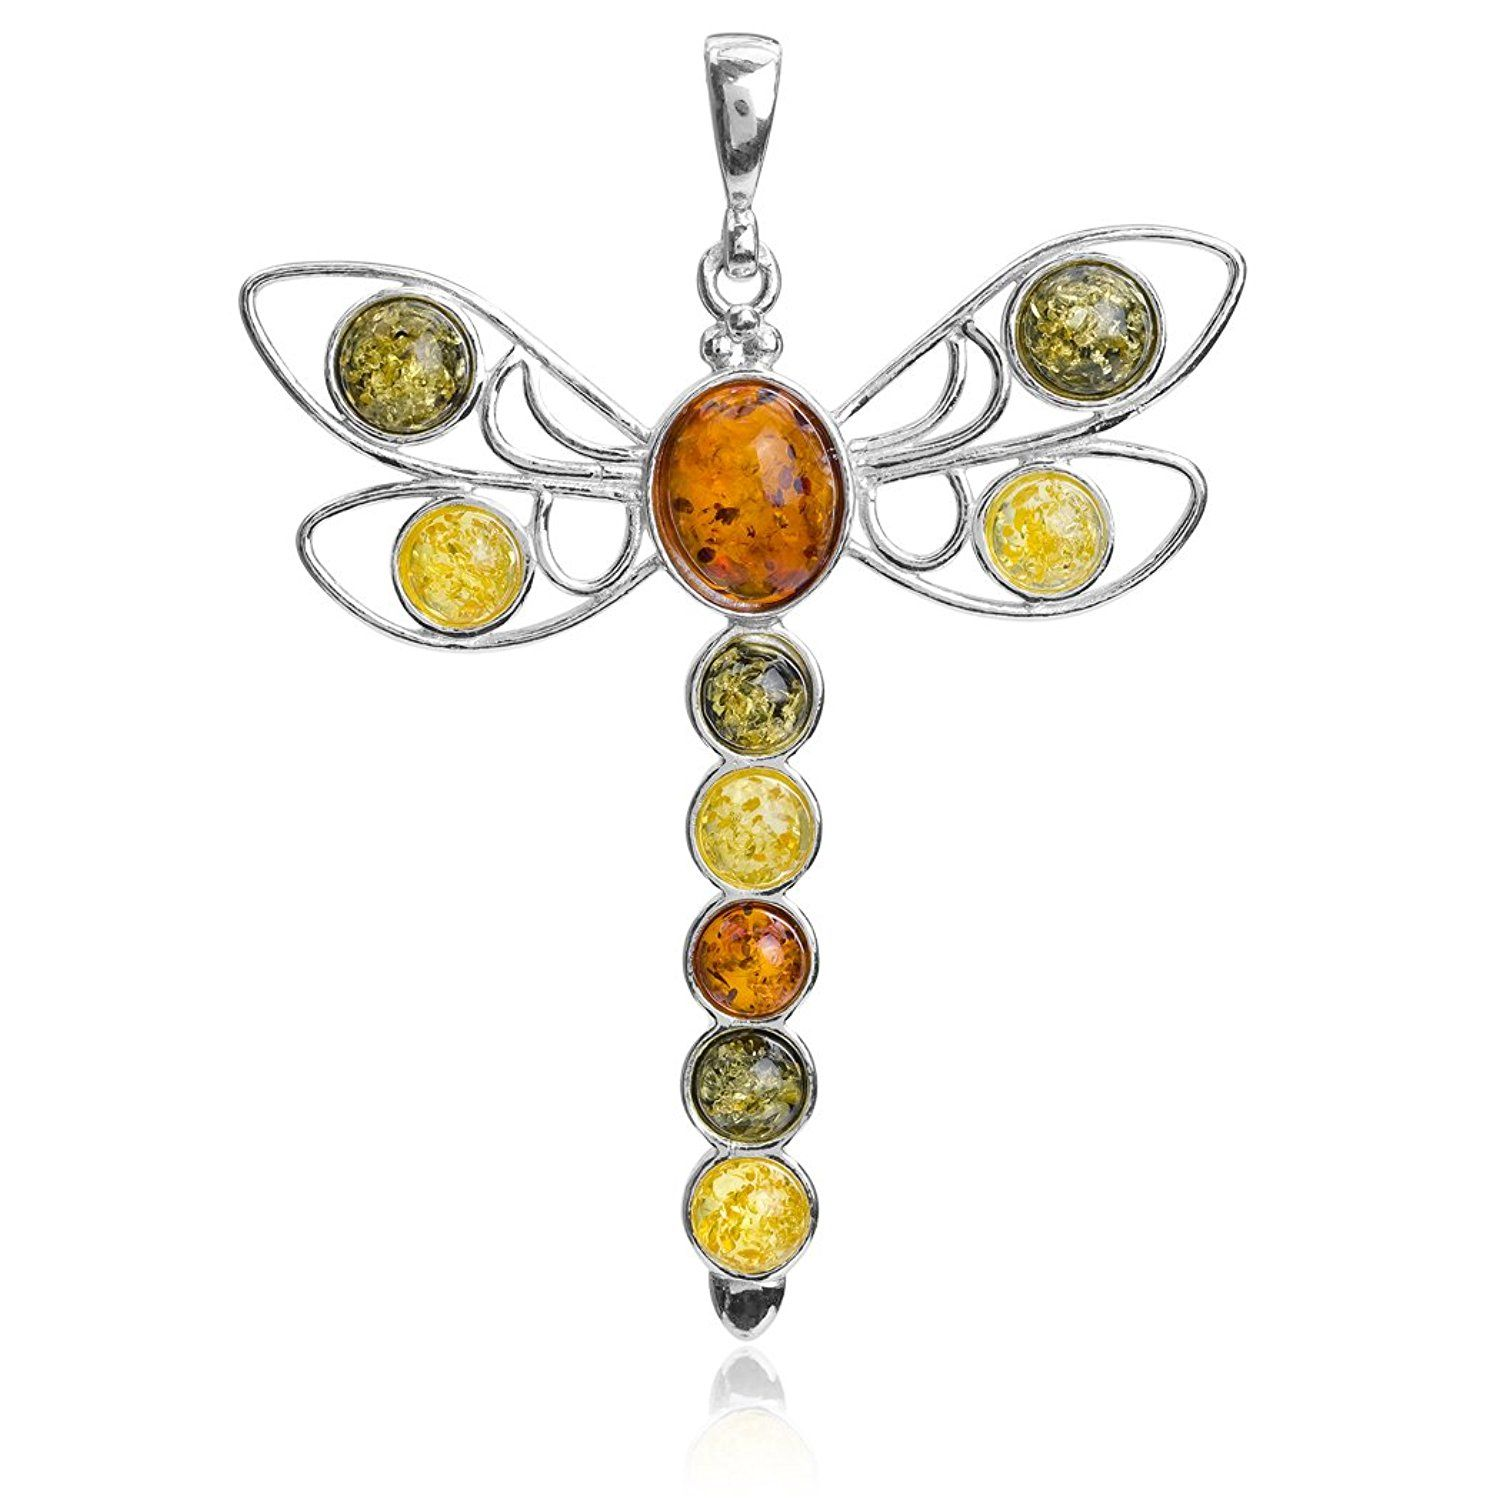 Multicolor Amber Sterling Silver Dragonfly Pendant Necklace Chain 46 cm HpqOx8X